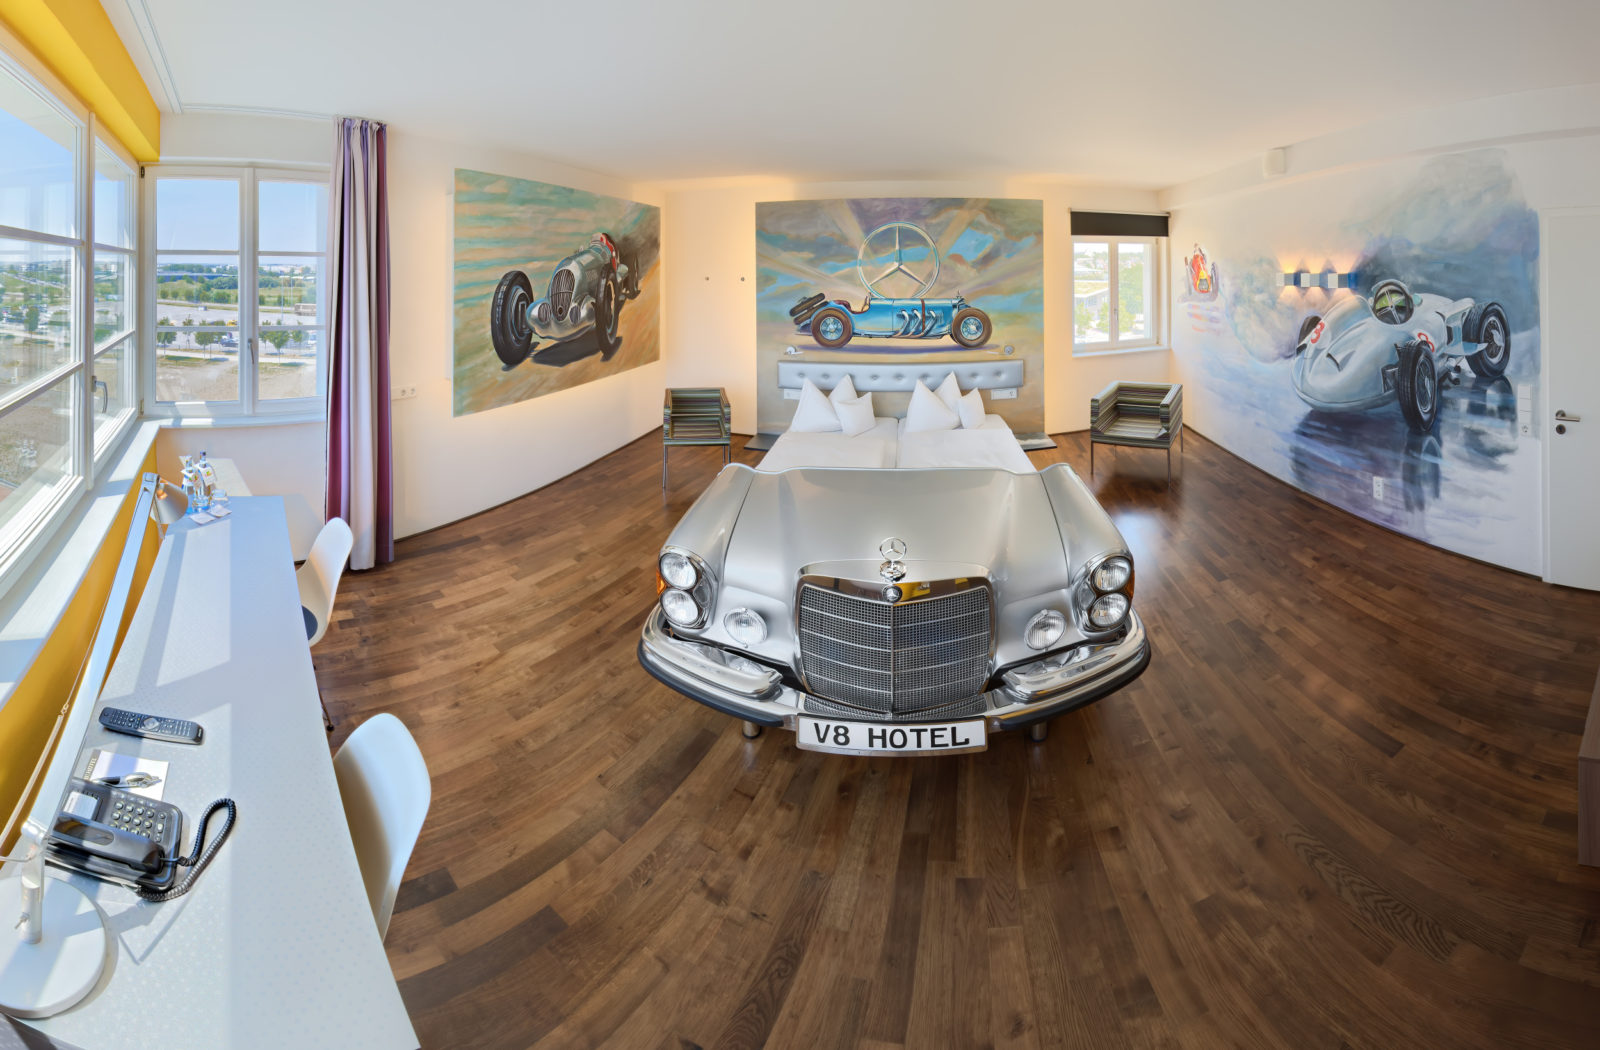 v8-hotel-is-one-of-a-kind-automotive-themed-hotel:-sleeps-you-in-a-car-bed